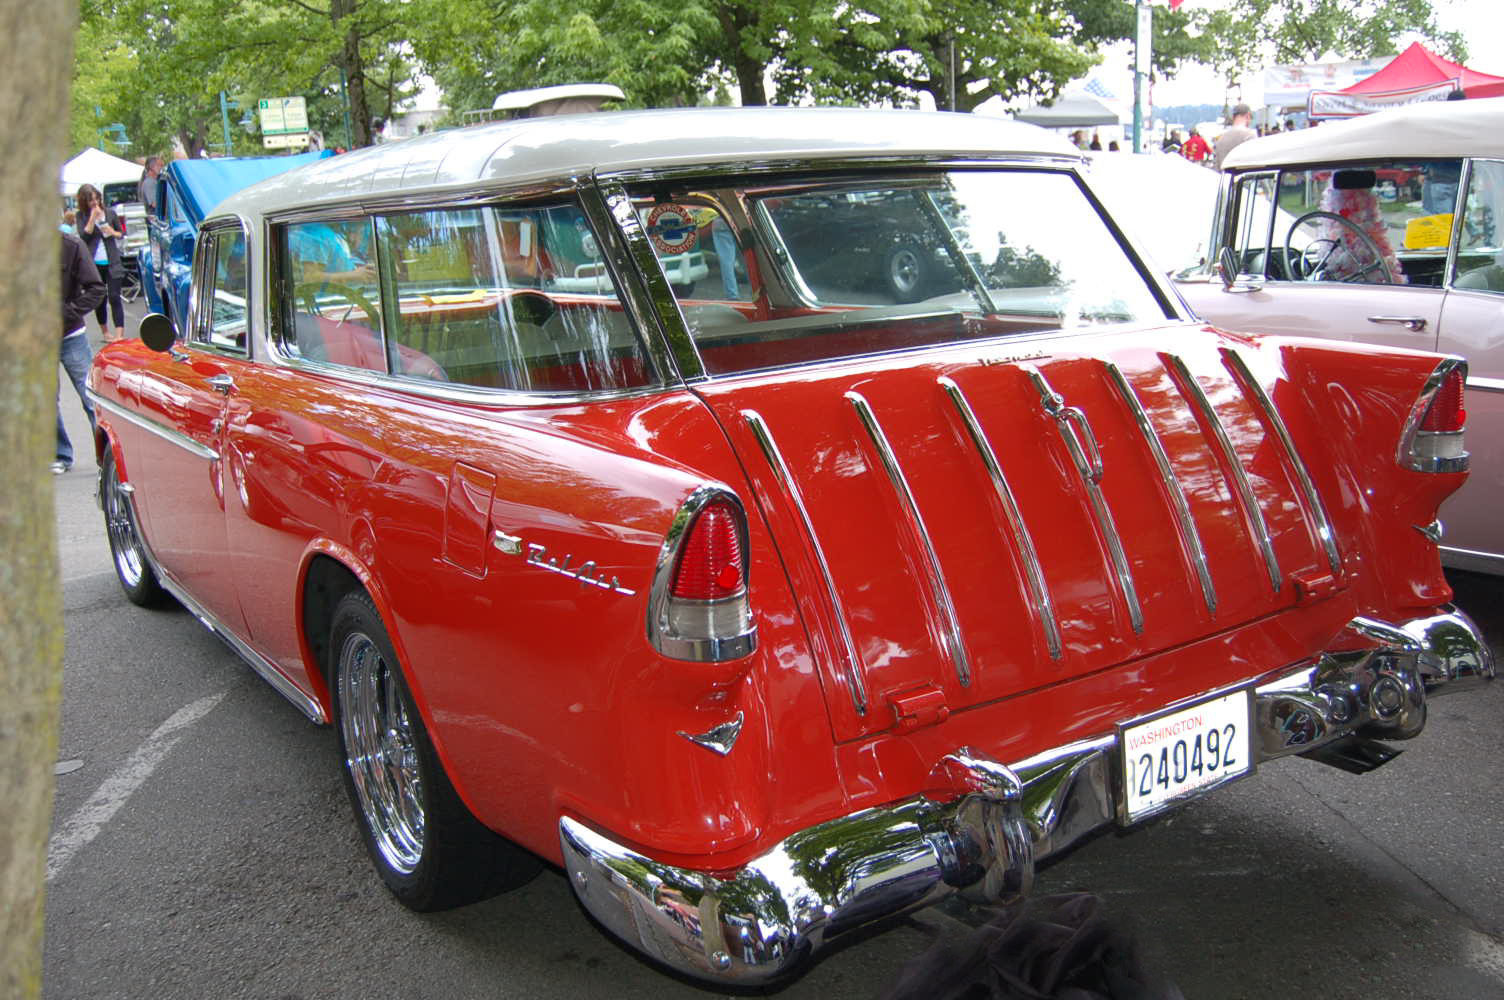 1955 Chevy Nomad Wagon Photos And Specs From Custom Paint Bel Air Painted White Over Red